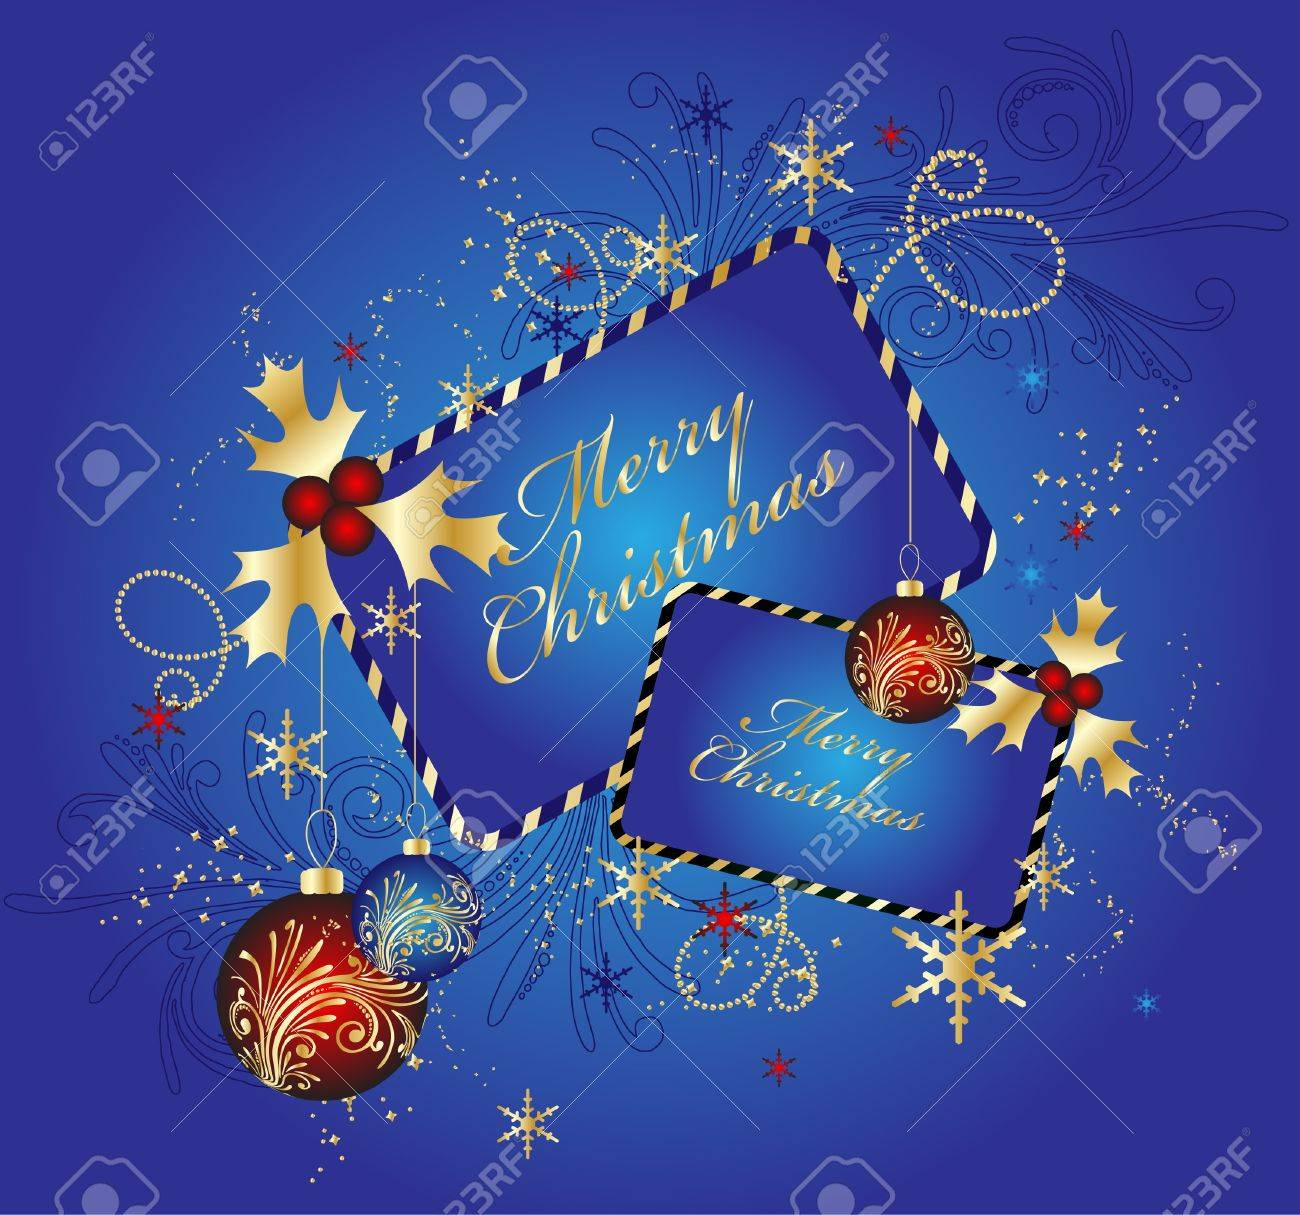 Blue Christmas background, vector illustration Stock Vector - 10352089